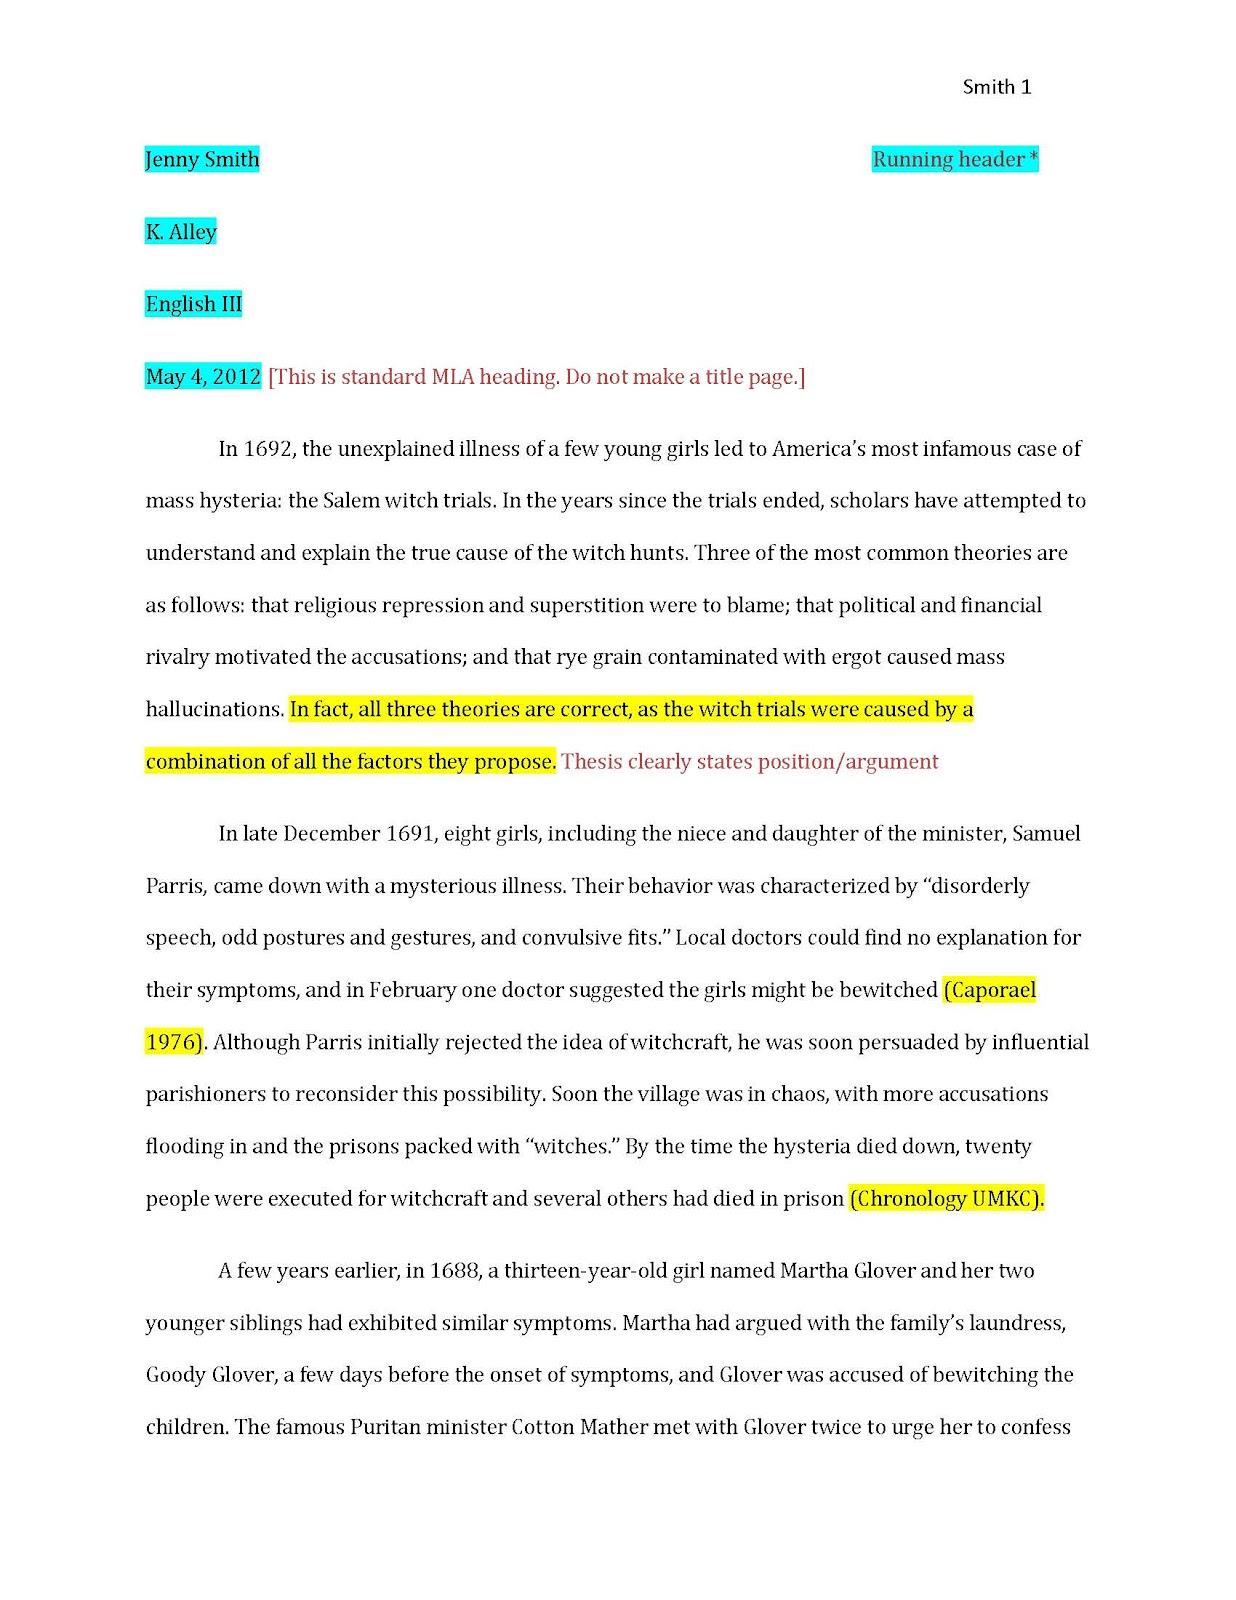 007 Examplepaper Page 1 Research Paper Wondrous Citation Mla Style Chicago Of Journal Article Format Apa Full